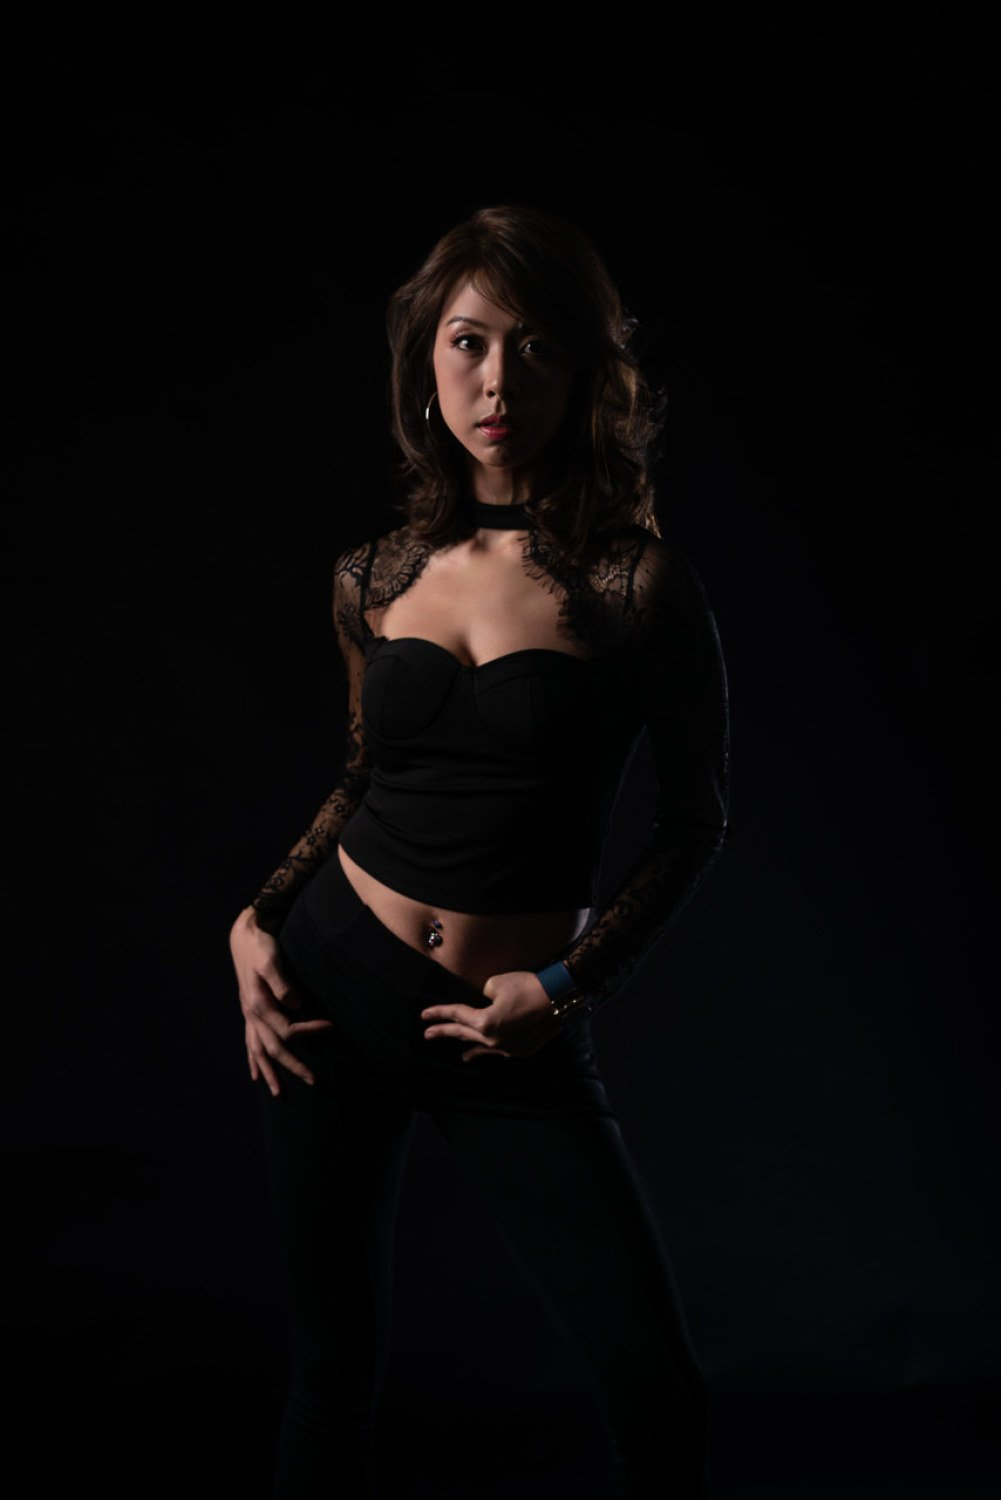 corporate headshot singapore a woman wearing a black top and jeans in a black-themed room